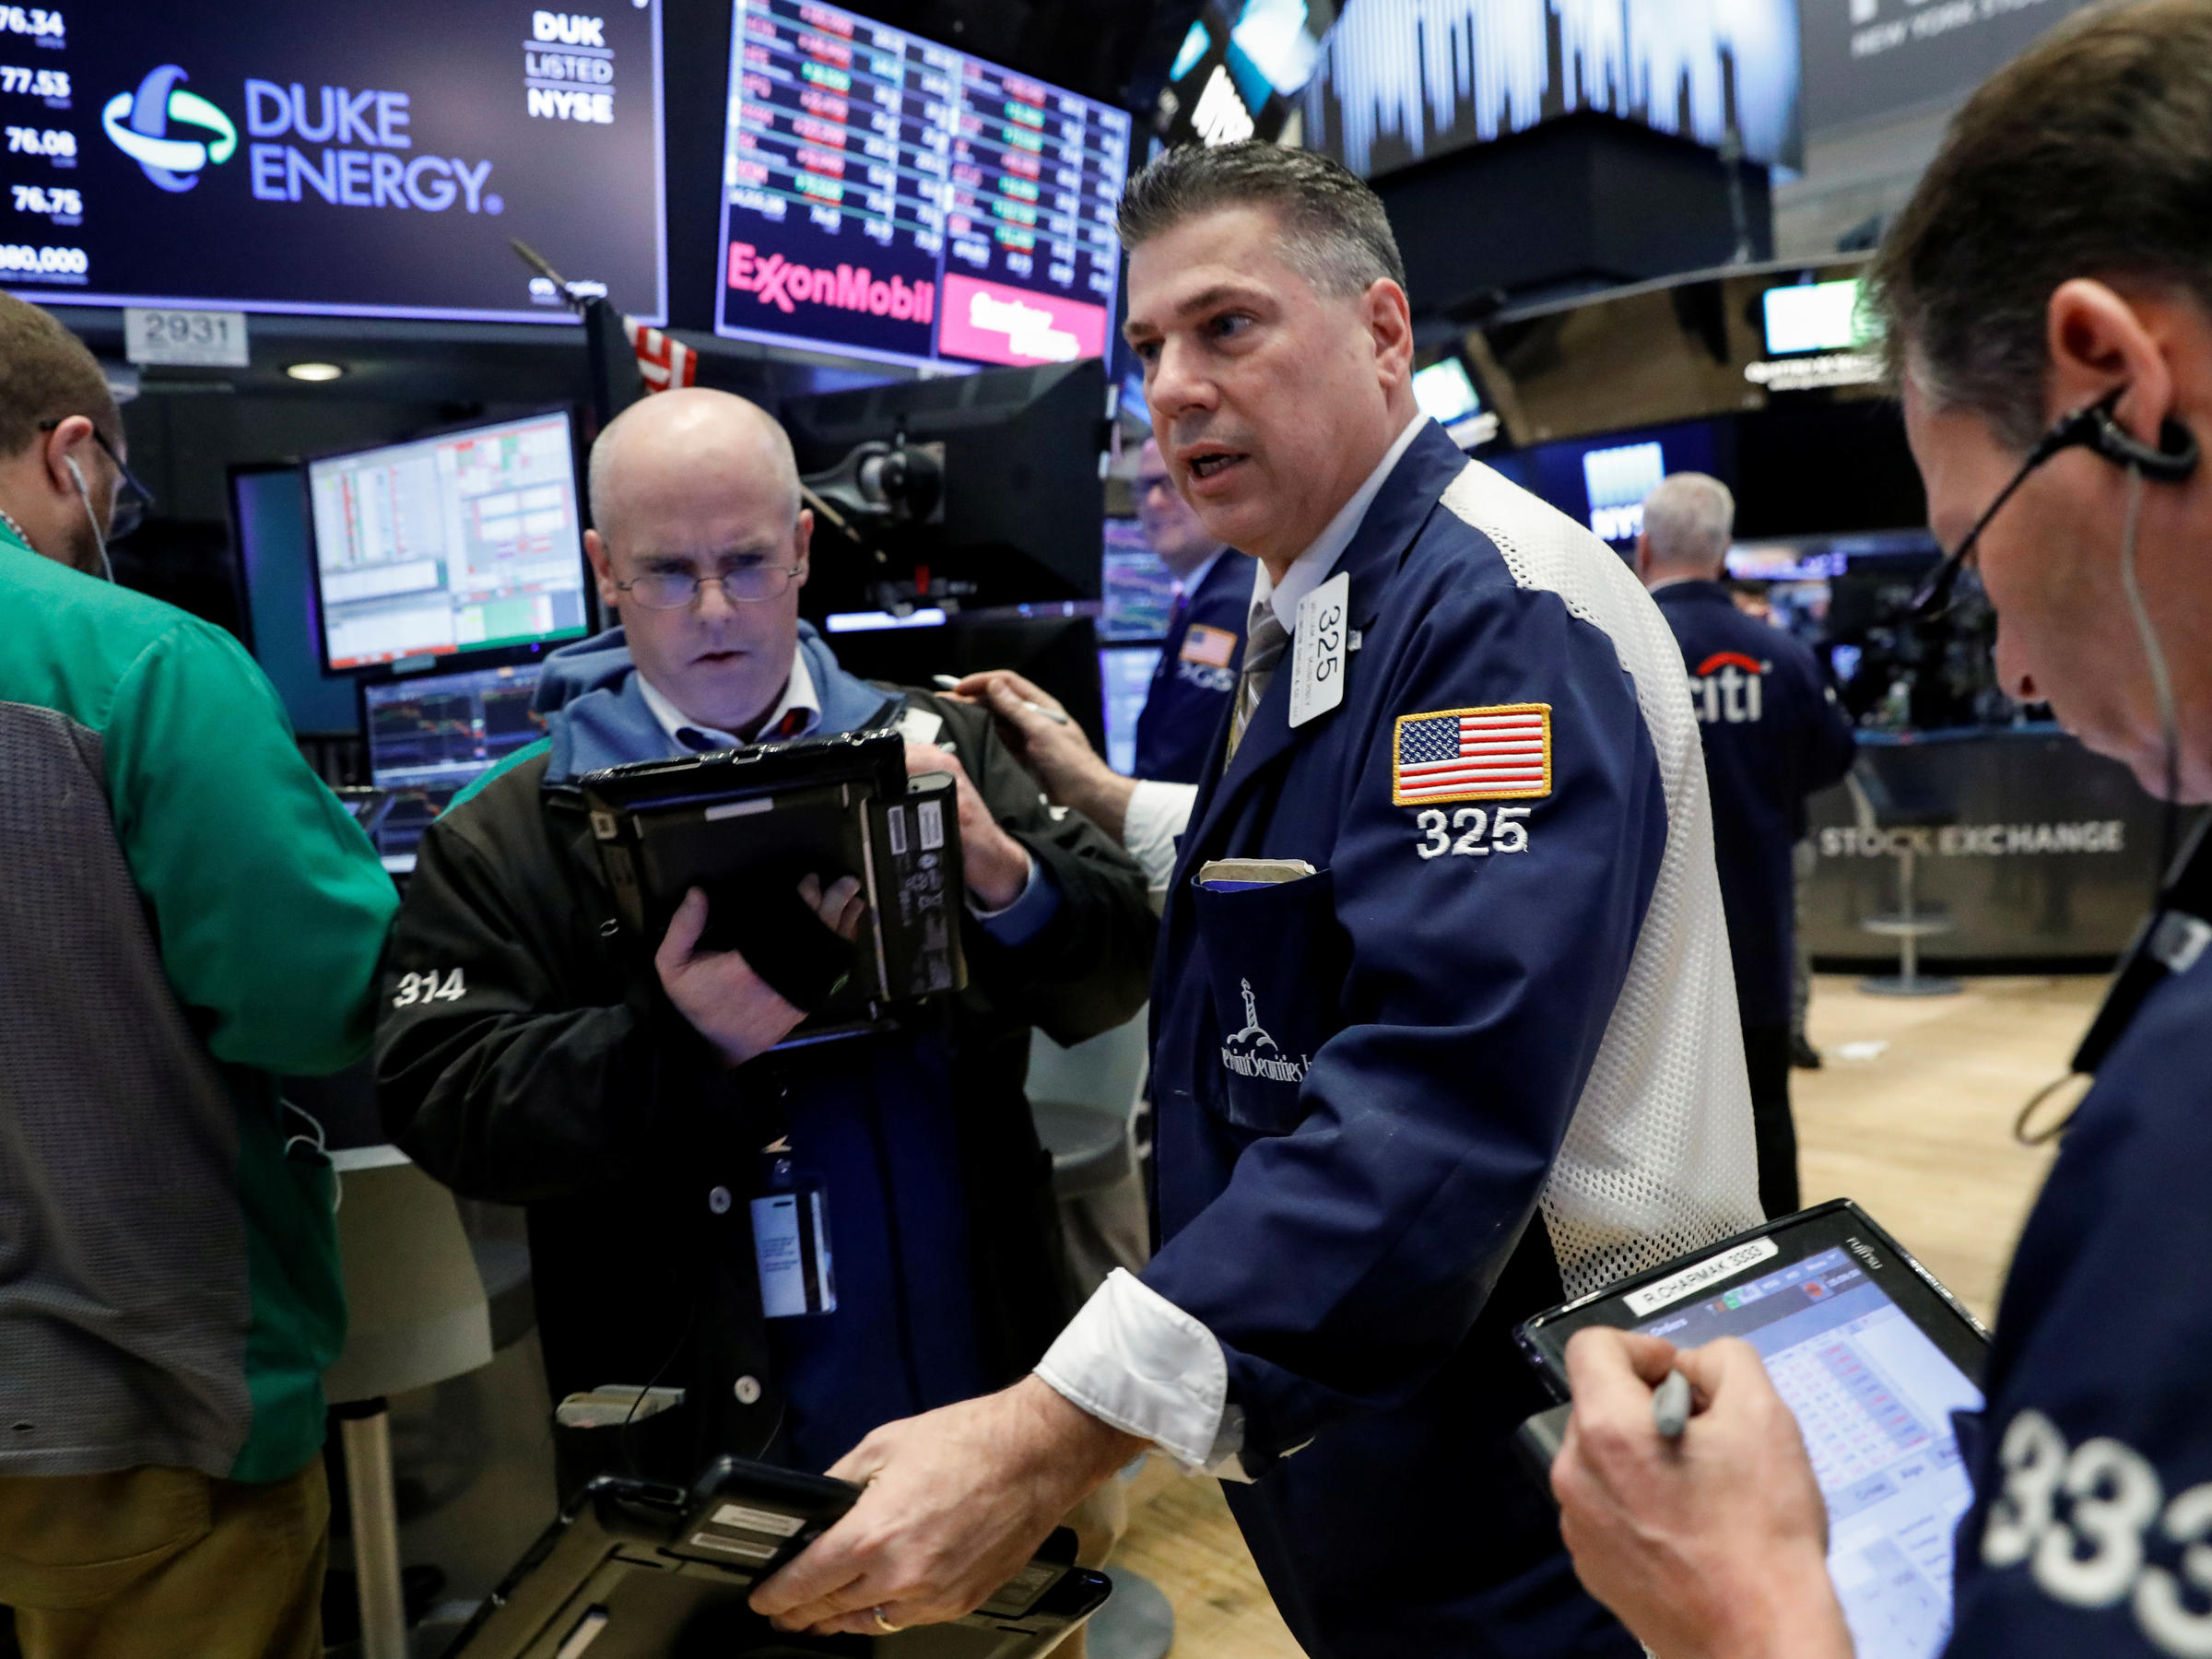 Stocks drop after Trump tariff action, but off lows